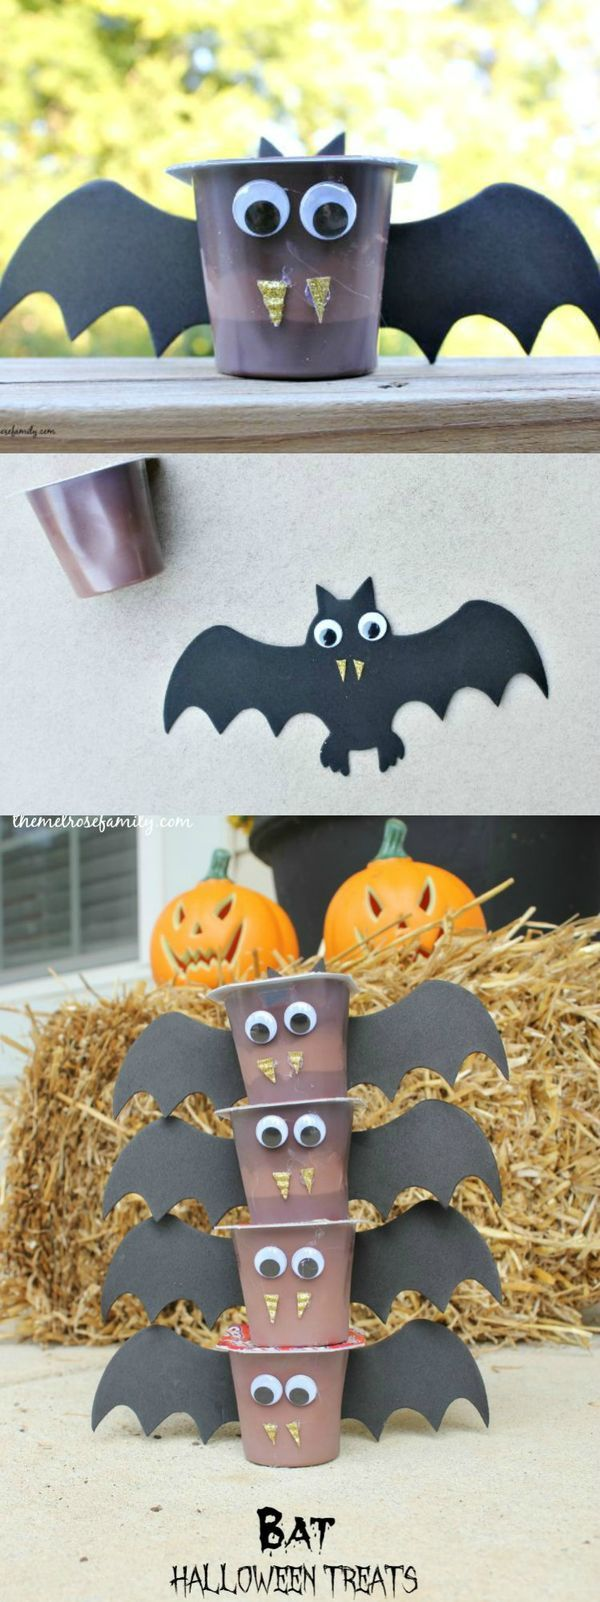 Best 25+ Halloween party favors ideas on Pinterest | Halloween ...